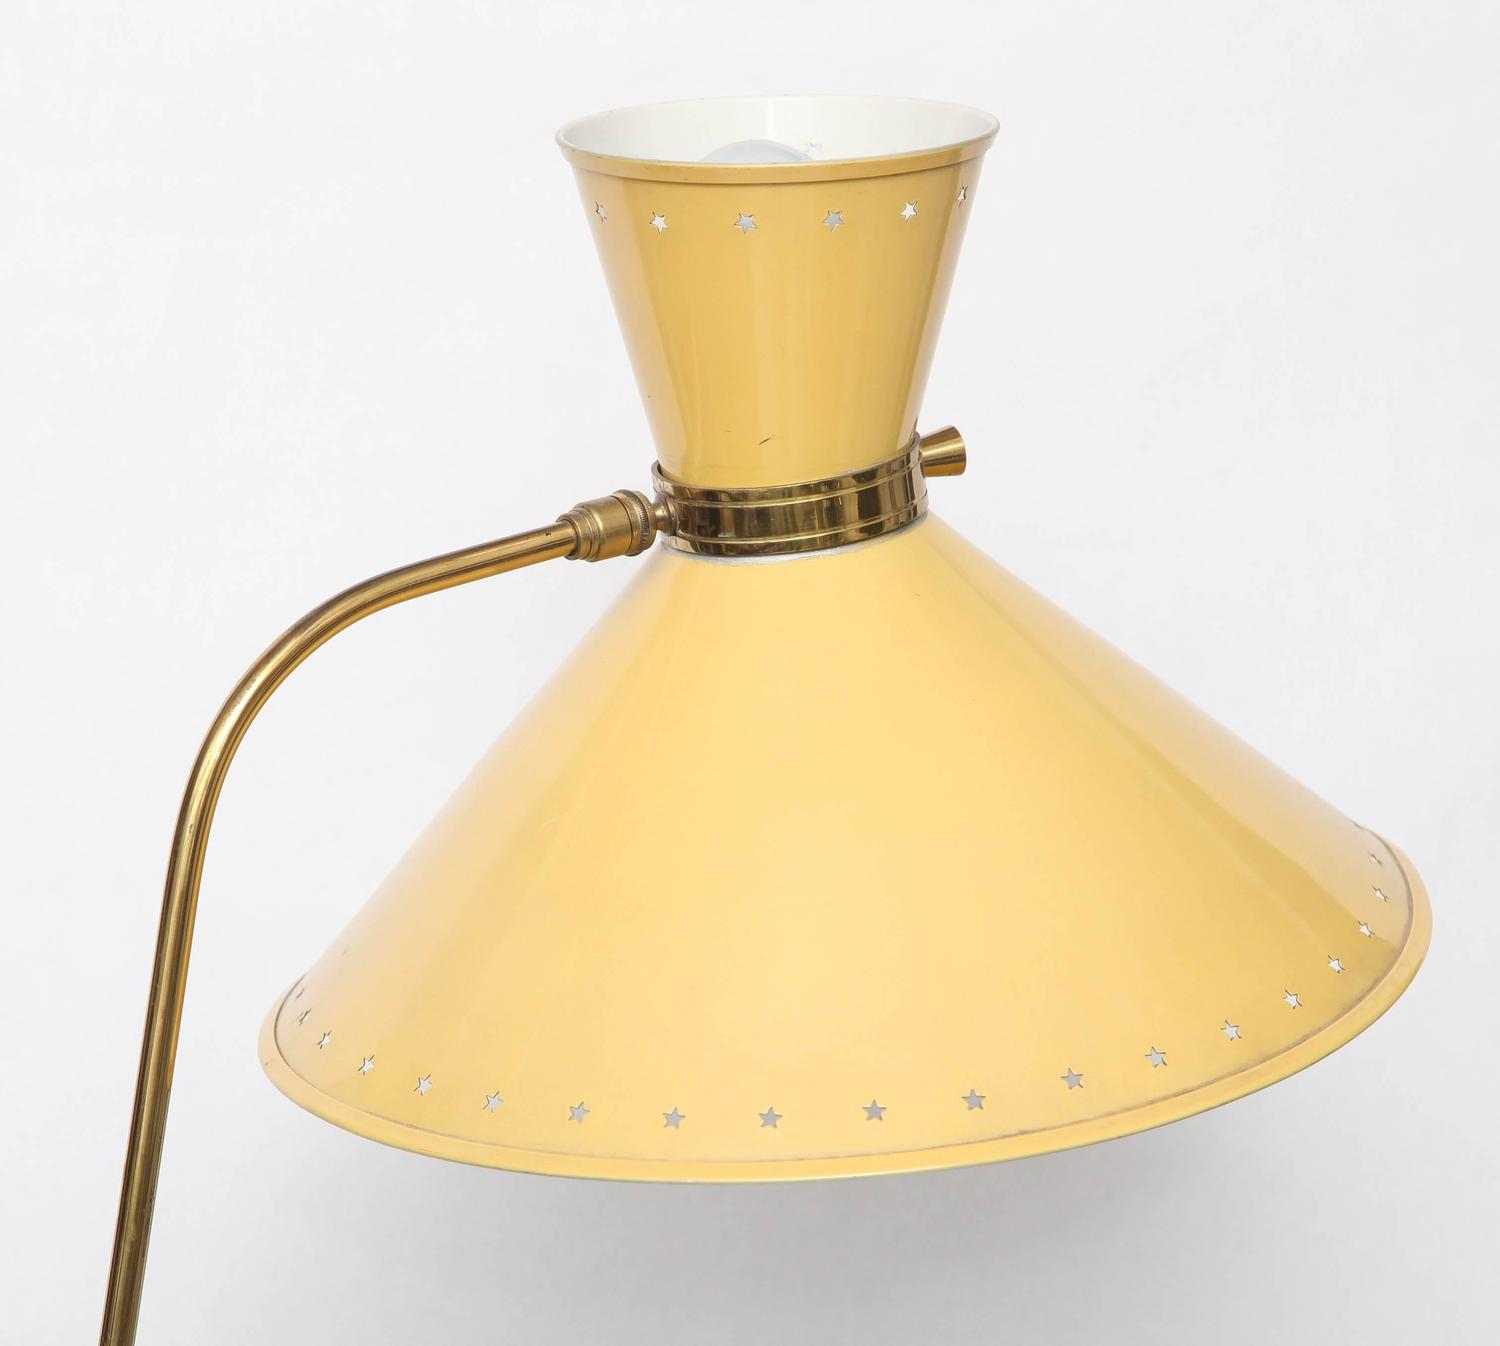 1950s French Articulated Floor Lamp By Boris Lacroix At